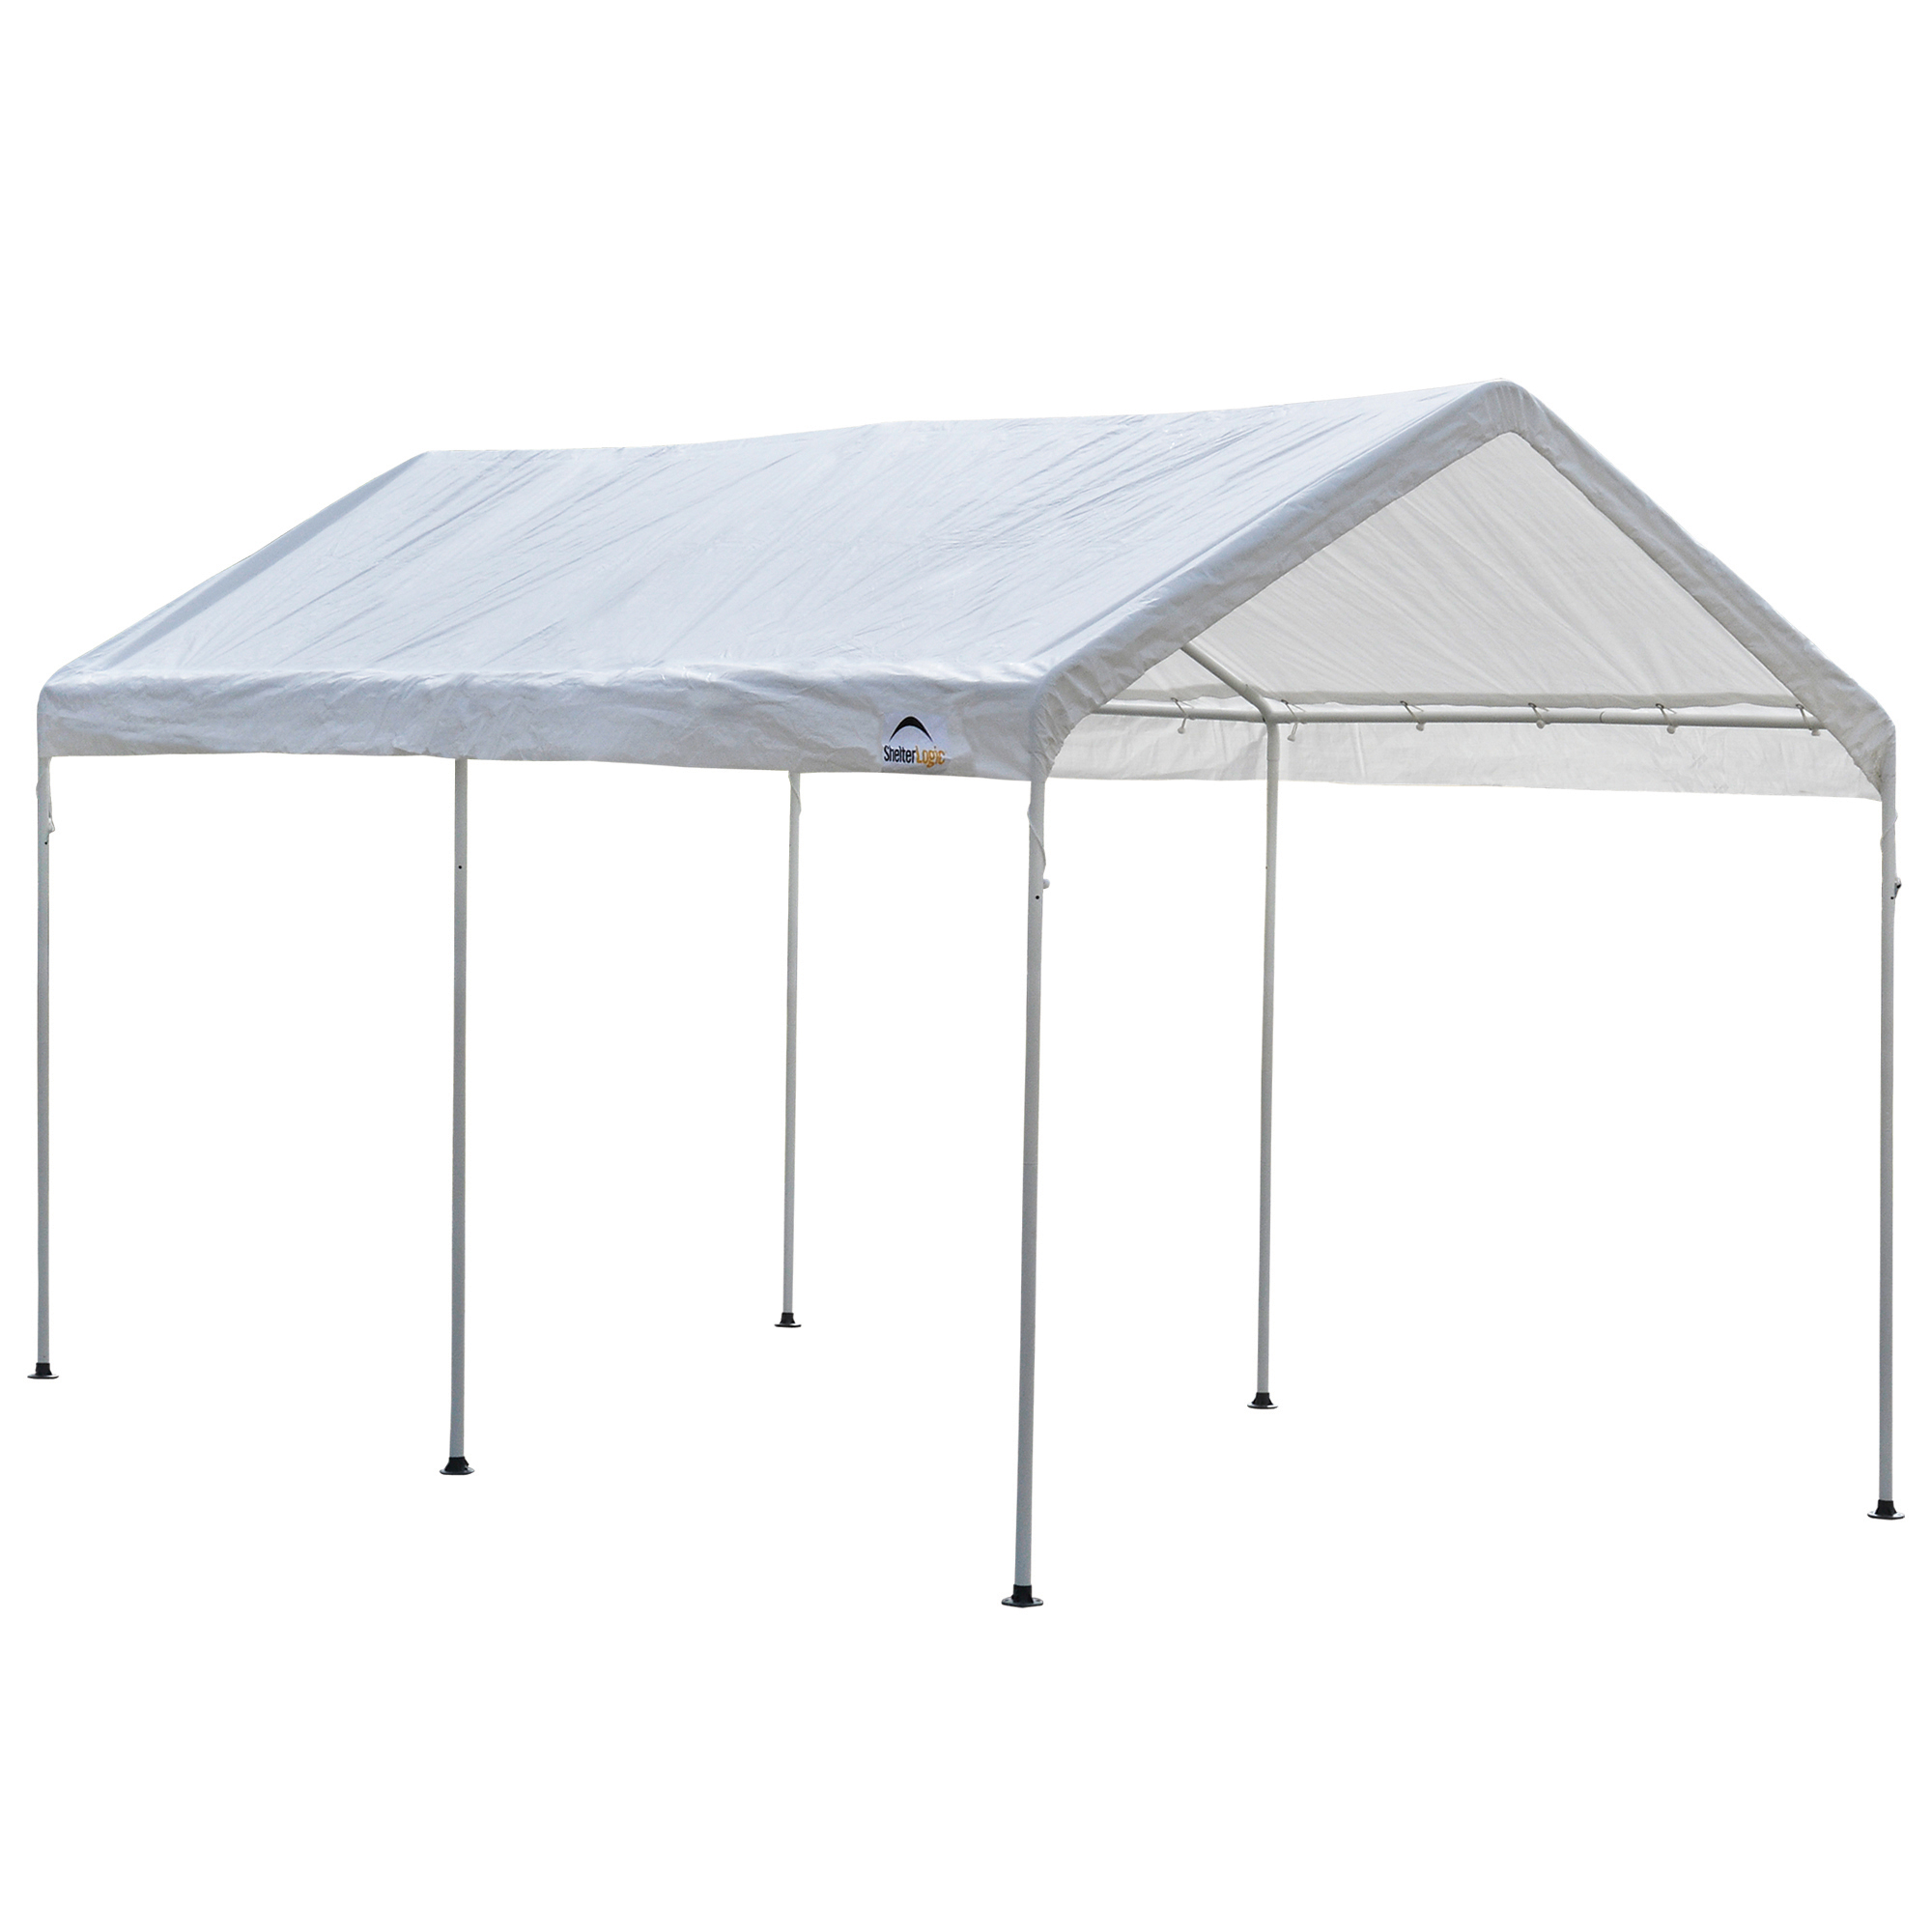 Shelterlogic Maxap Canopy 9x16ft White by Shelterlogic LLC